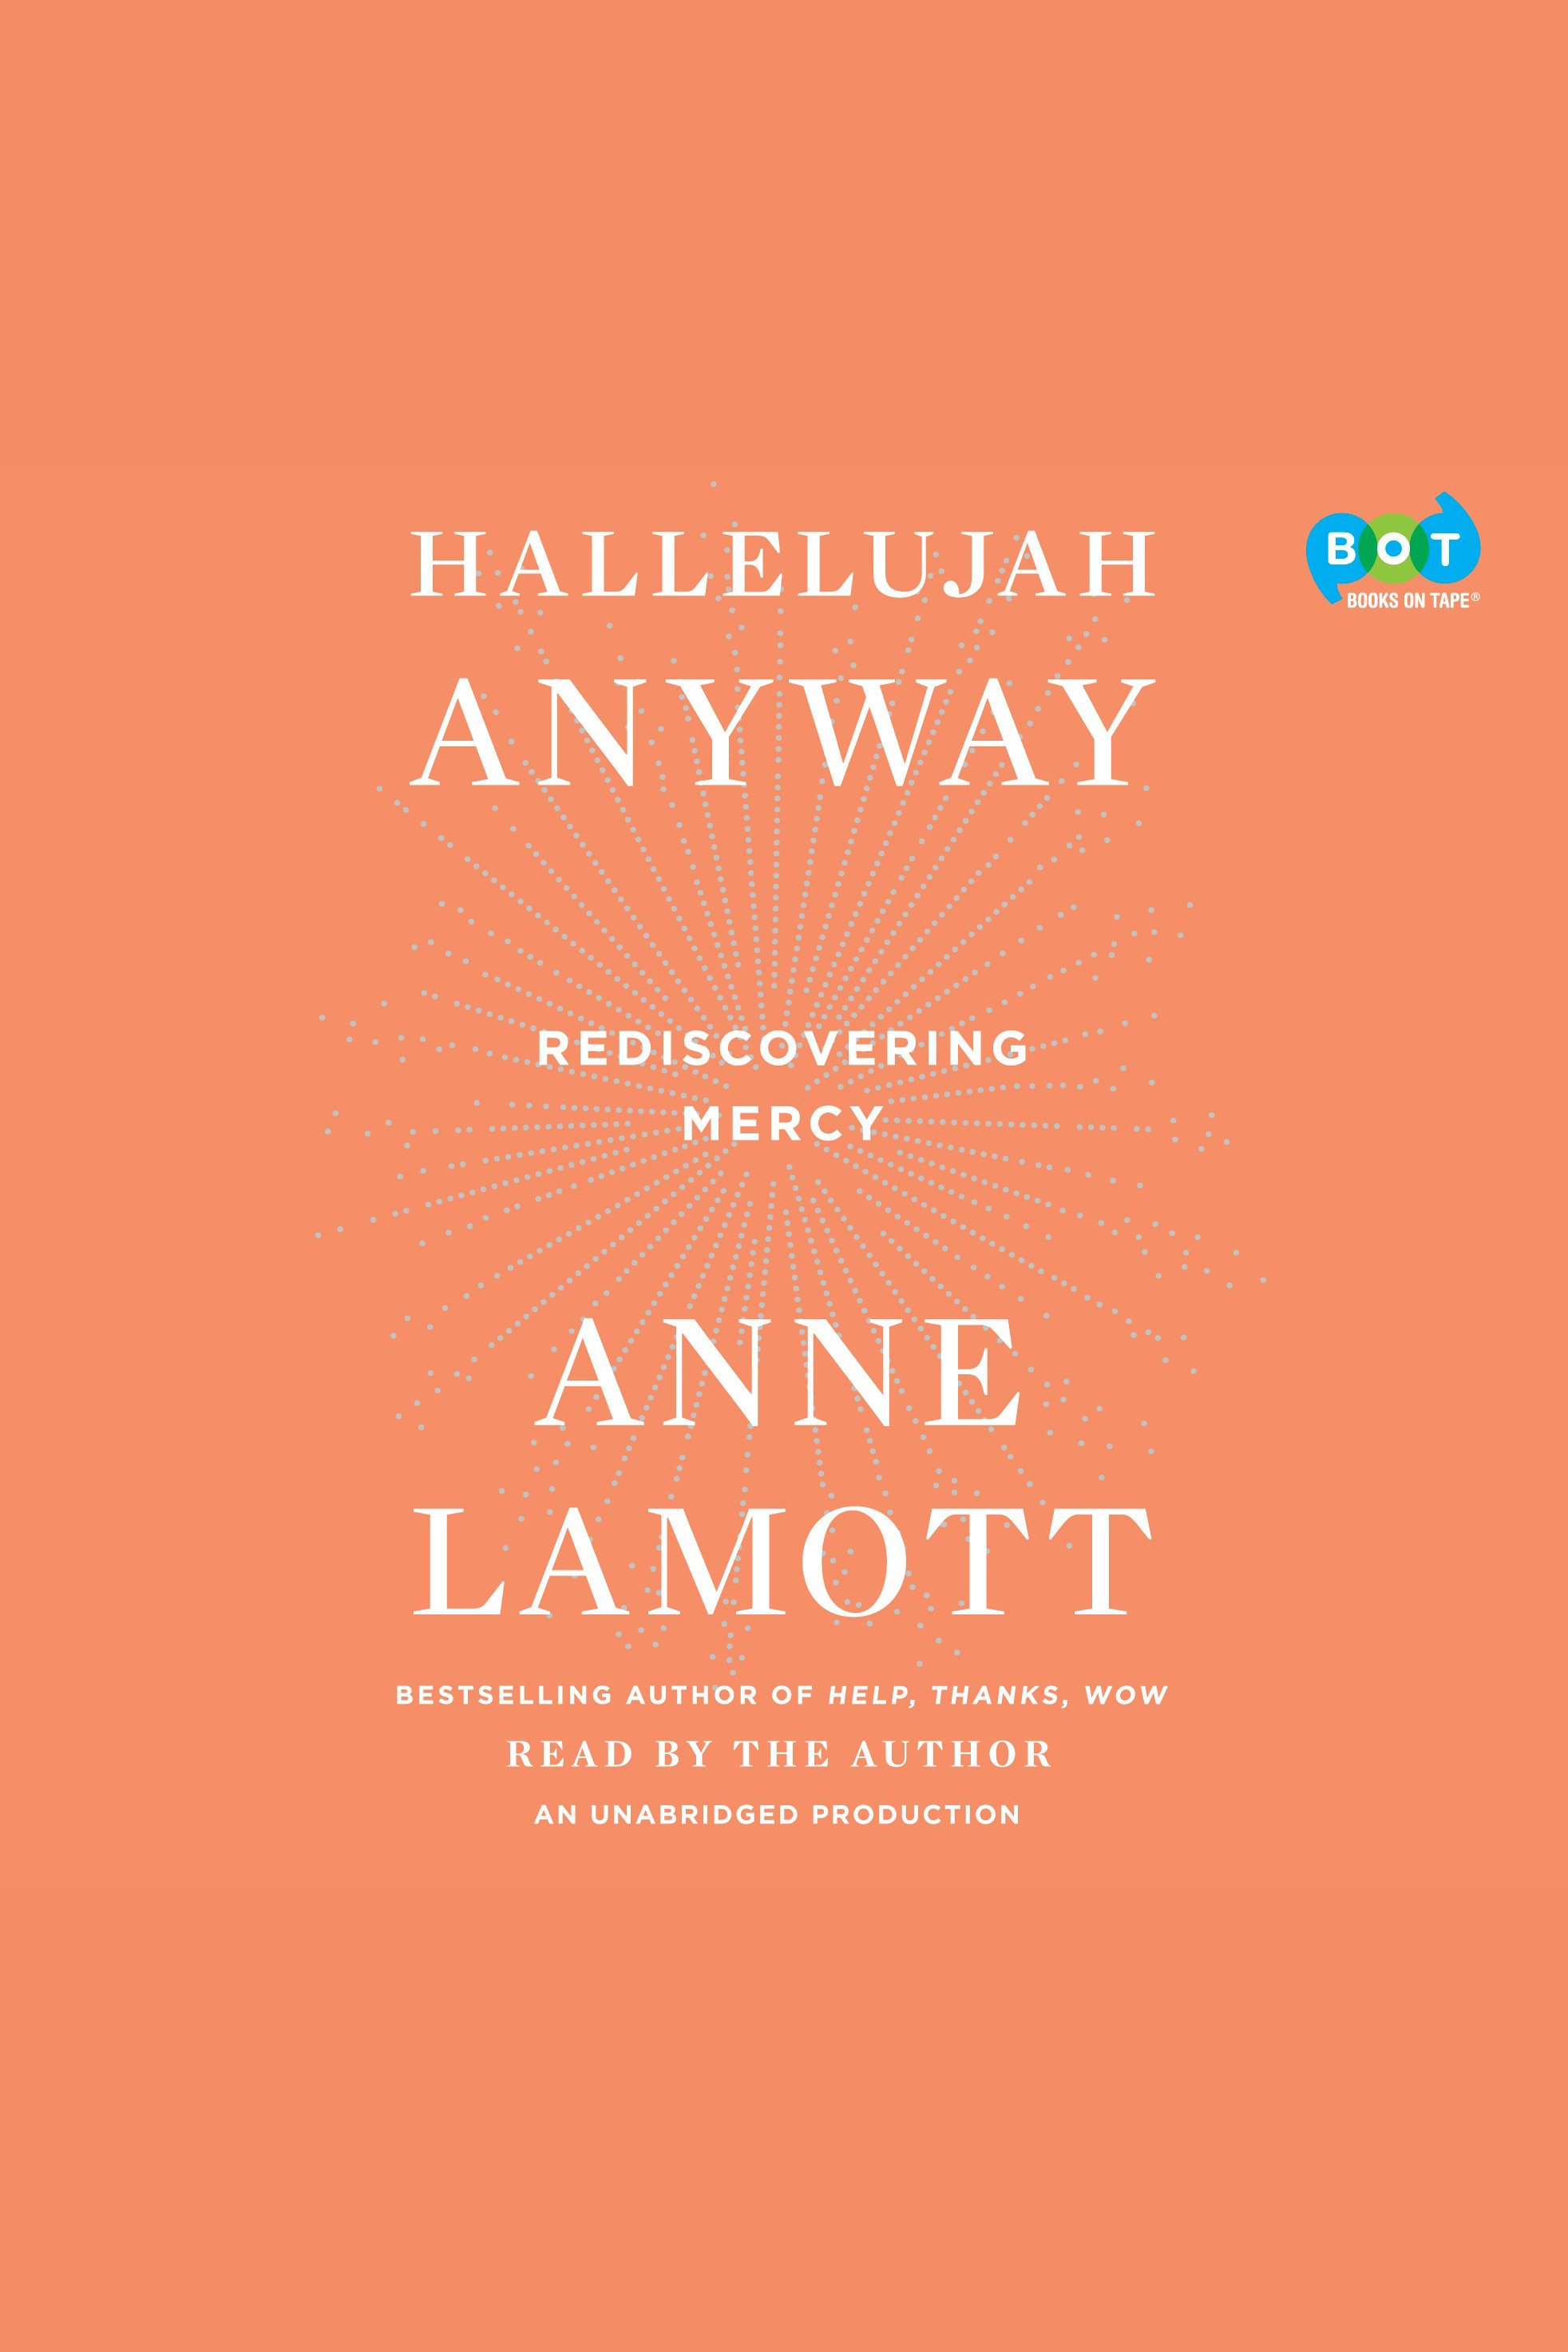 Hallelujah Anyway Rediscovering Mercy